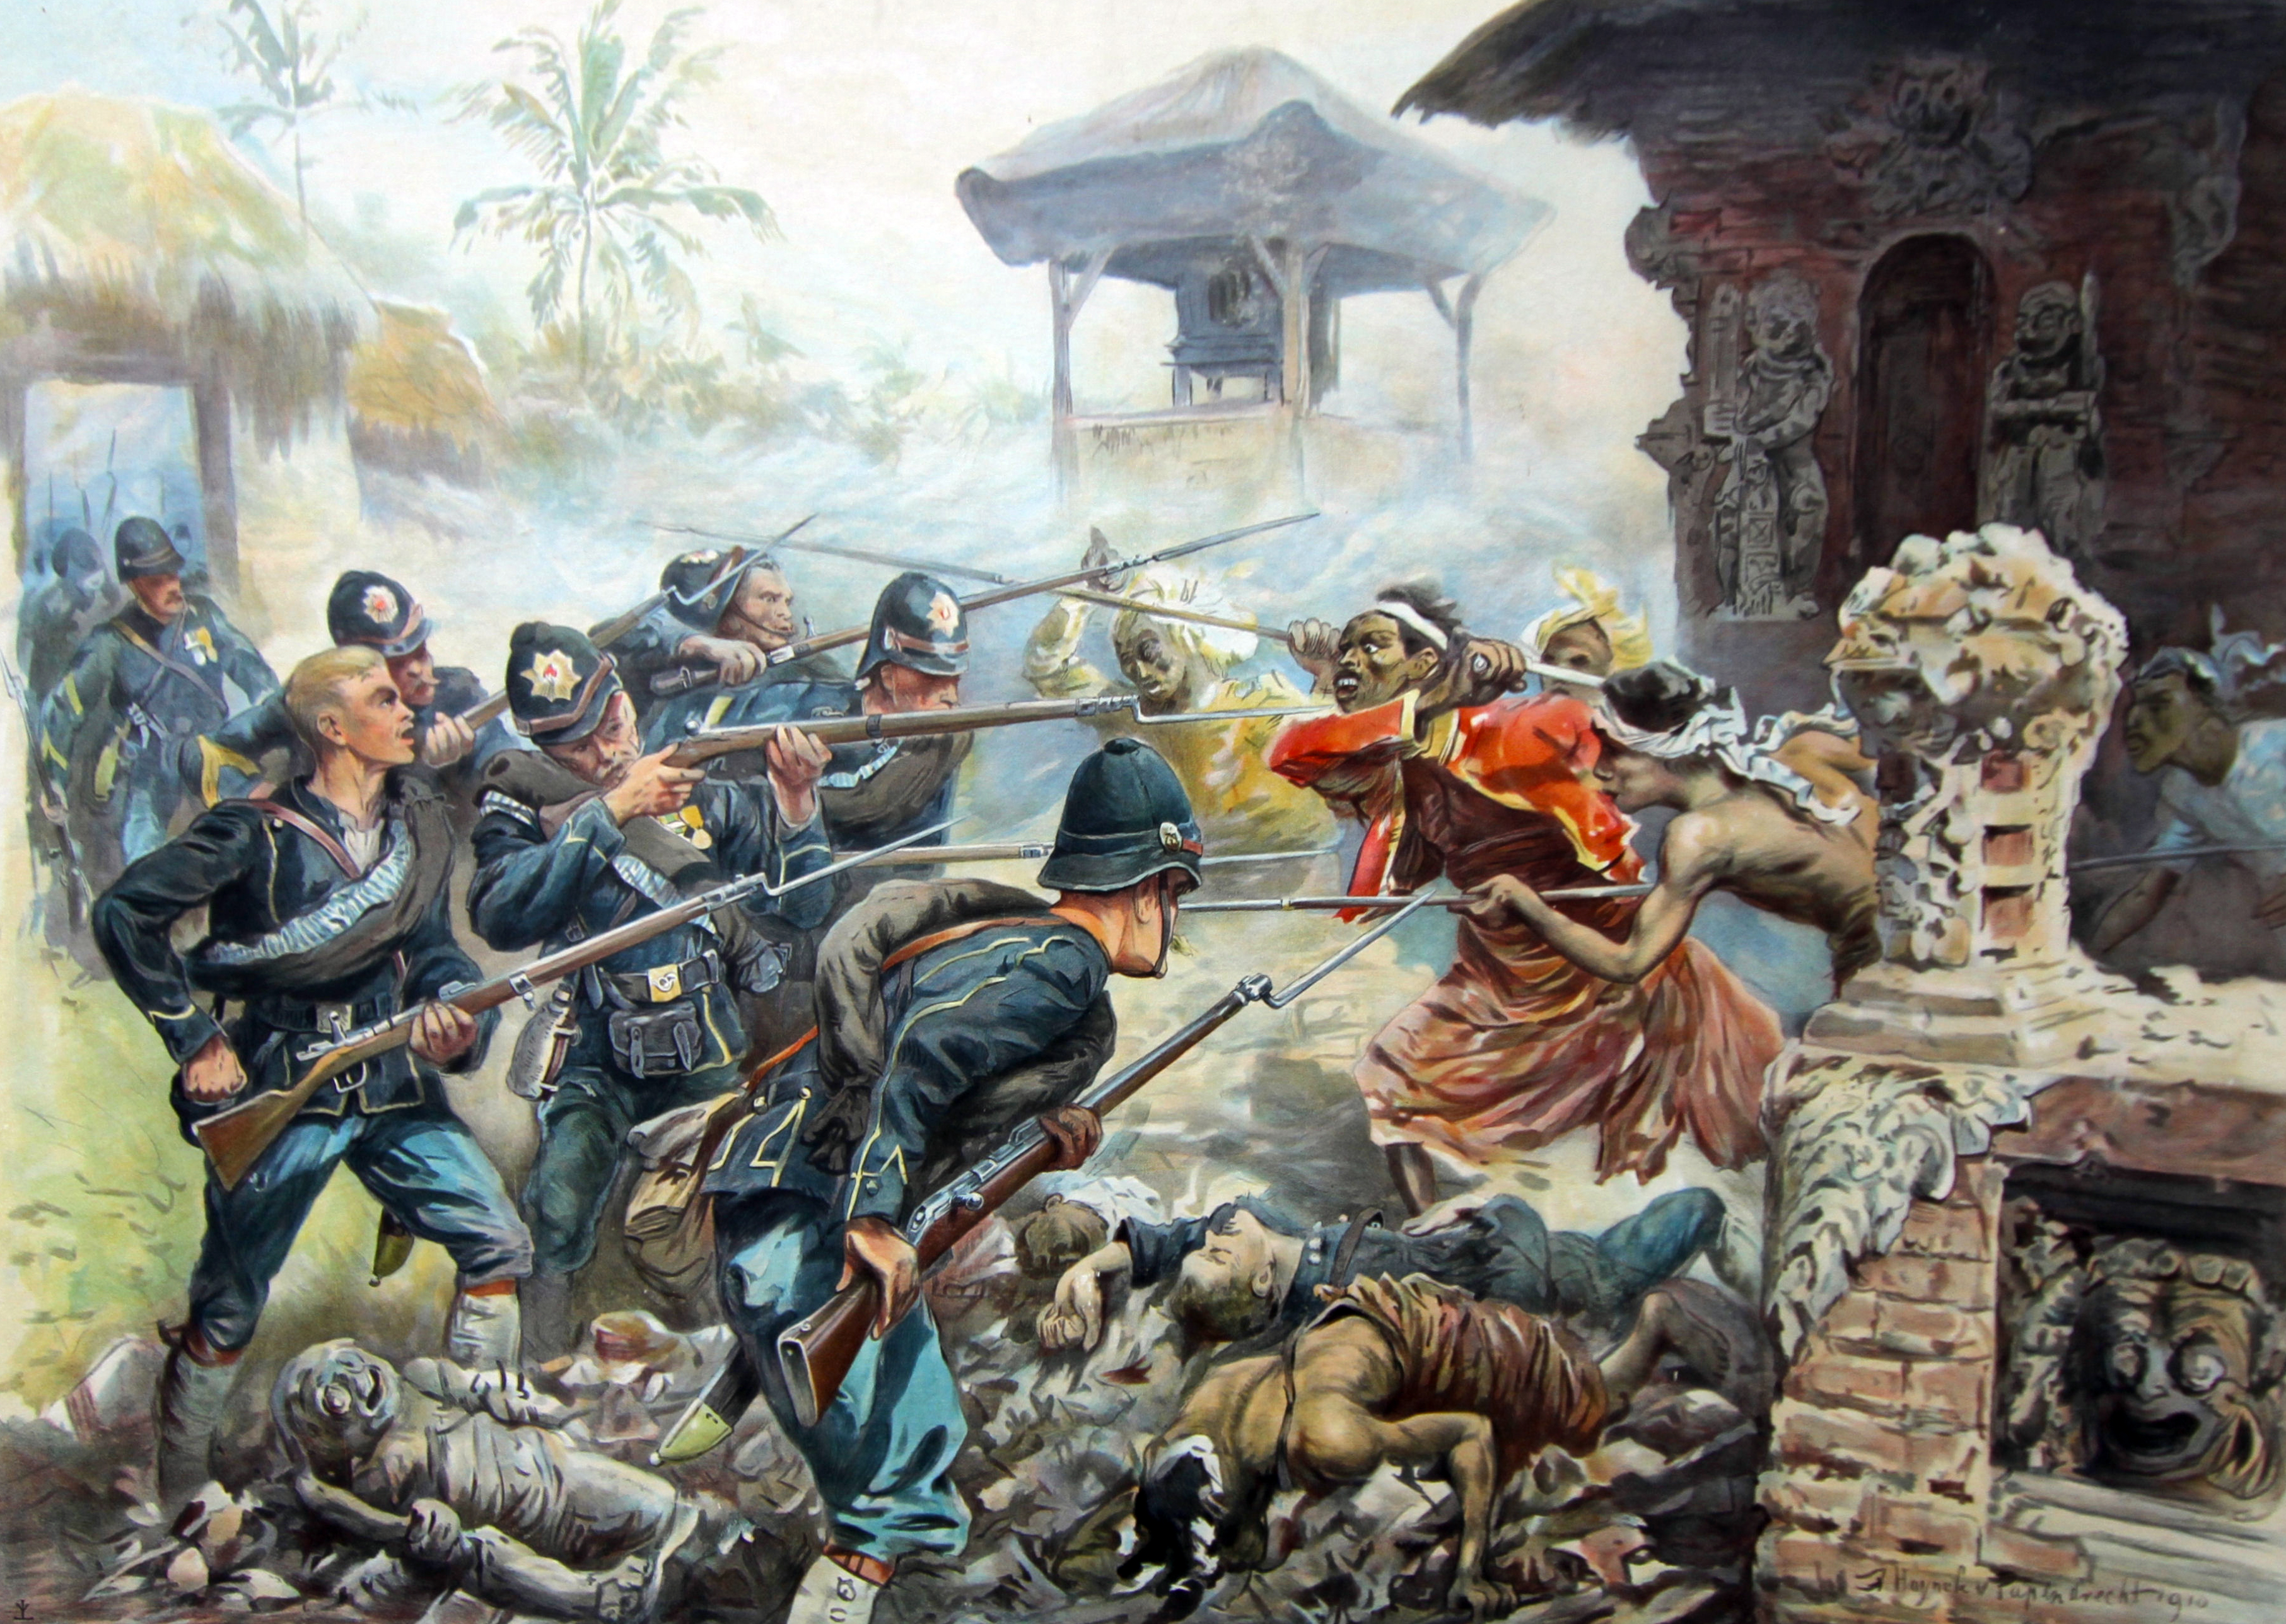 Lombok in the past, History of Lombok